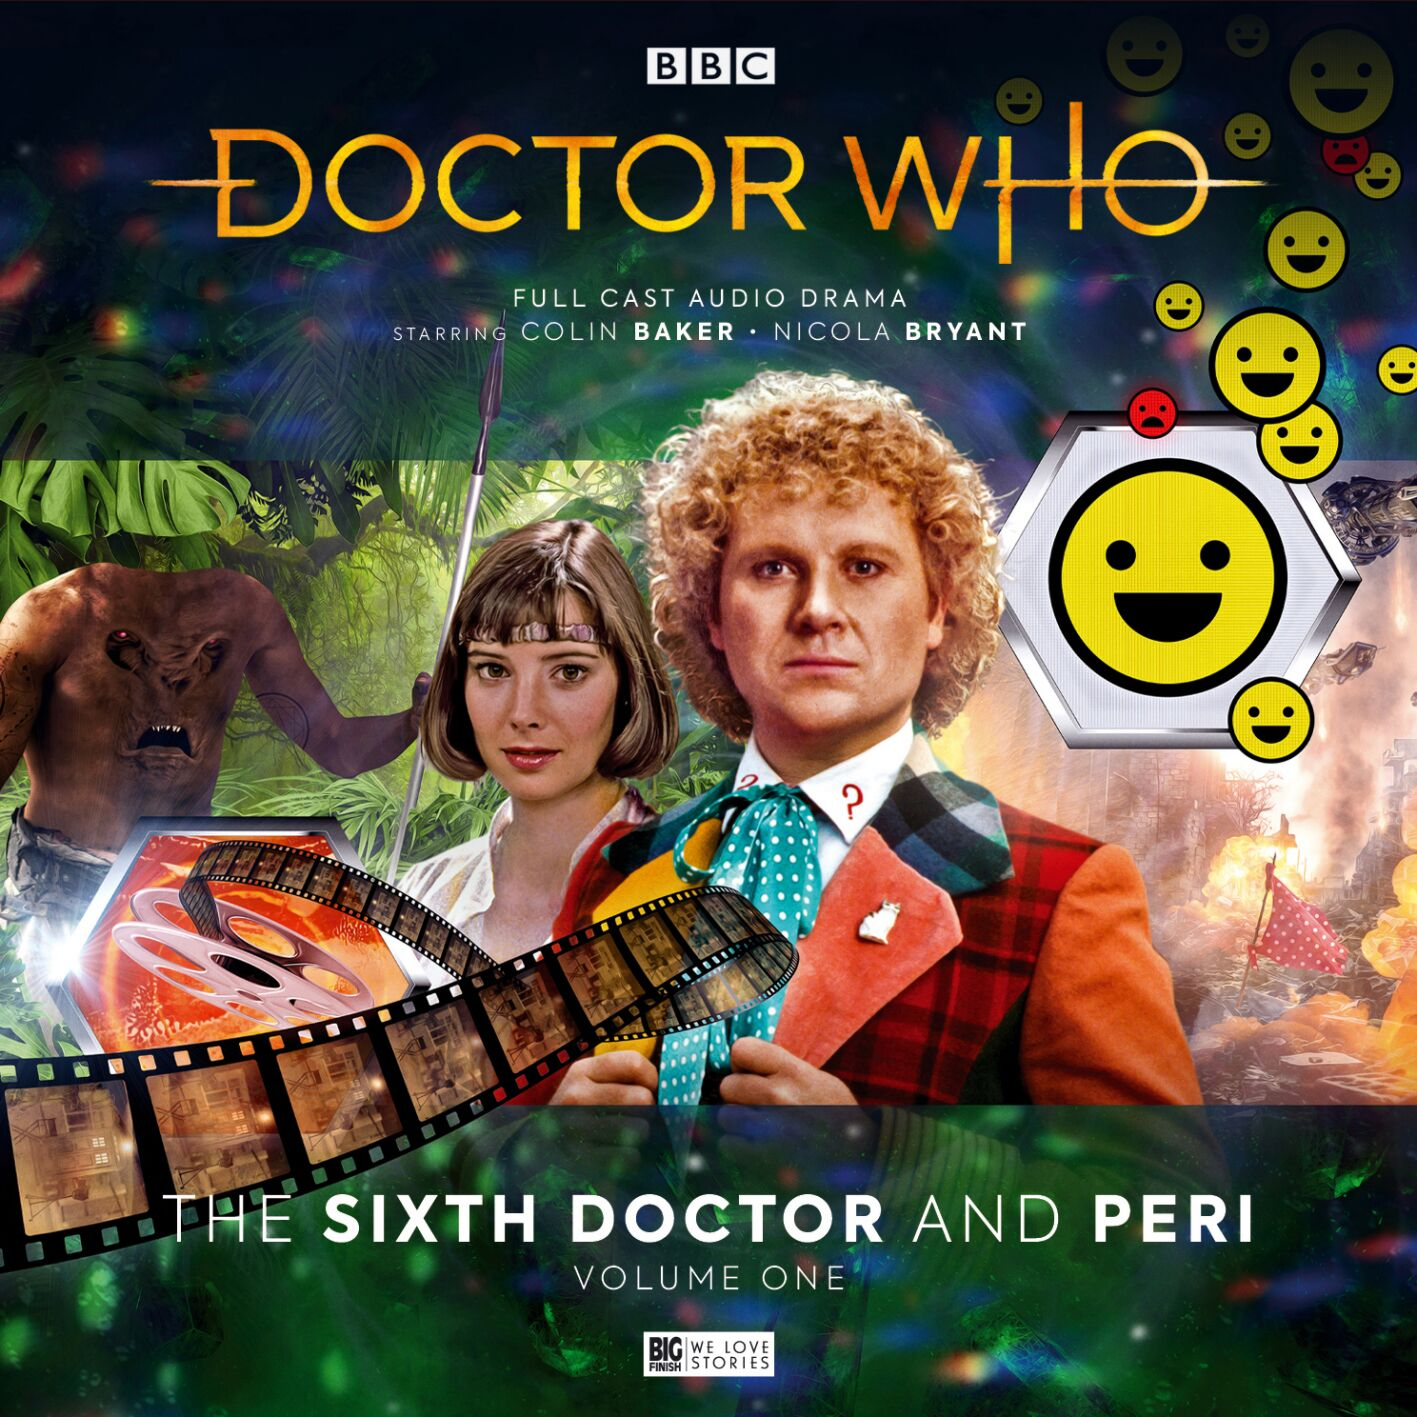 Doctor Who: The Sixth Doctor and Peri: Volume One announced!